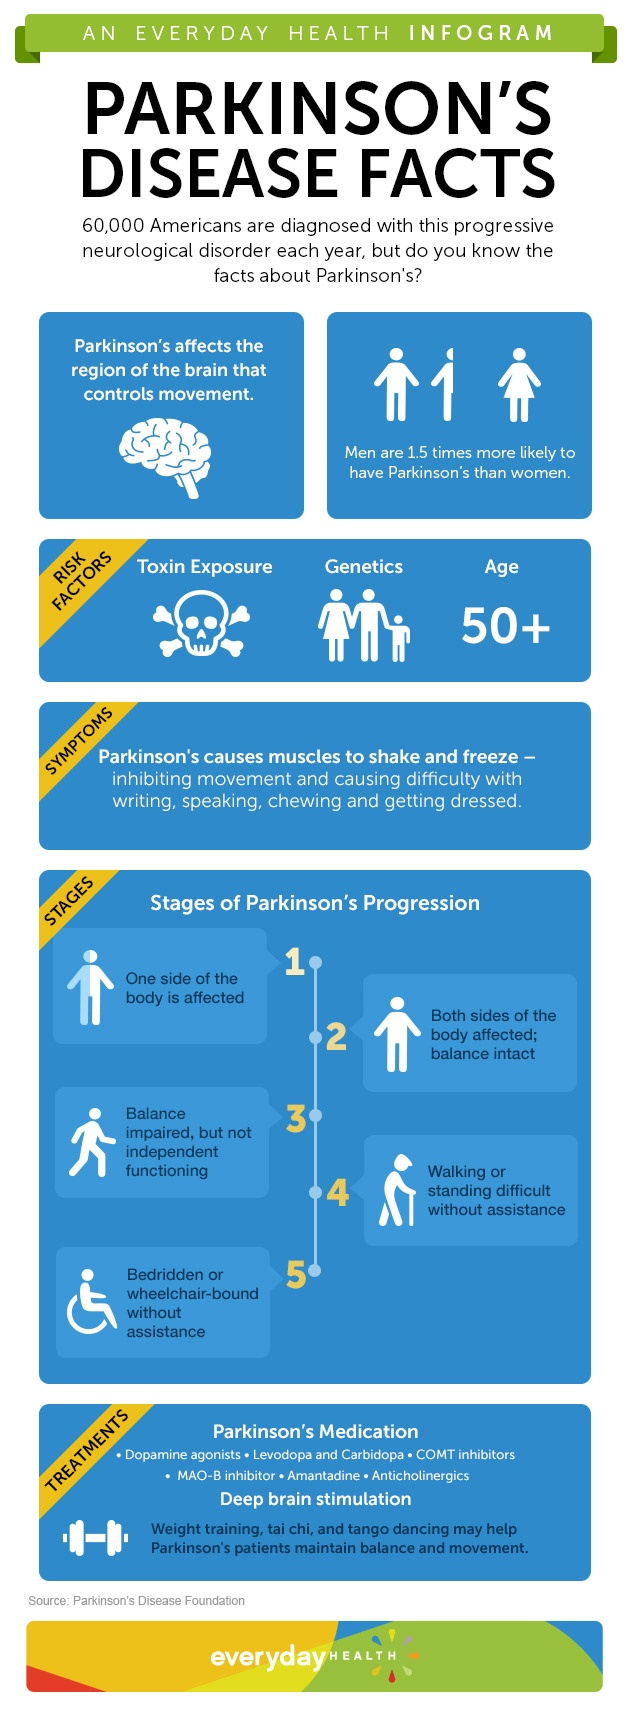 A description of parkinsons disease and its damage